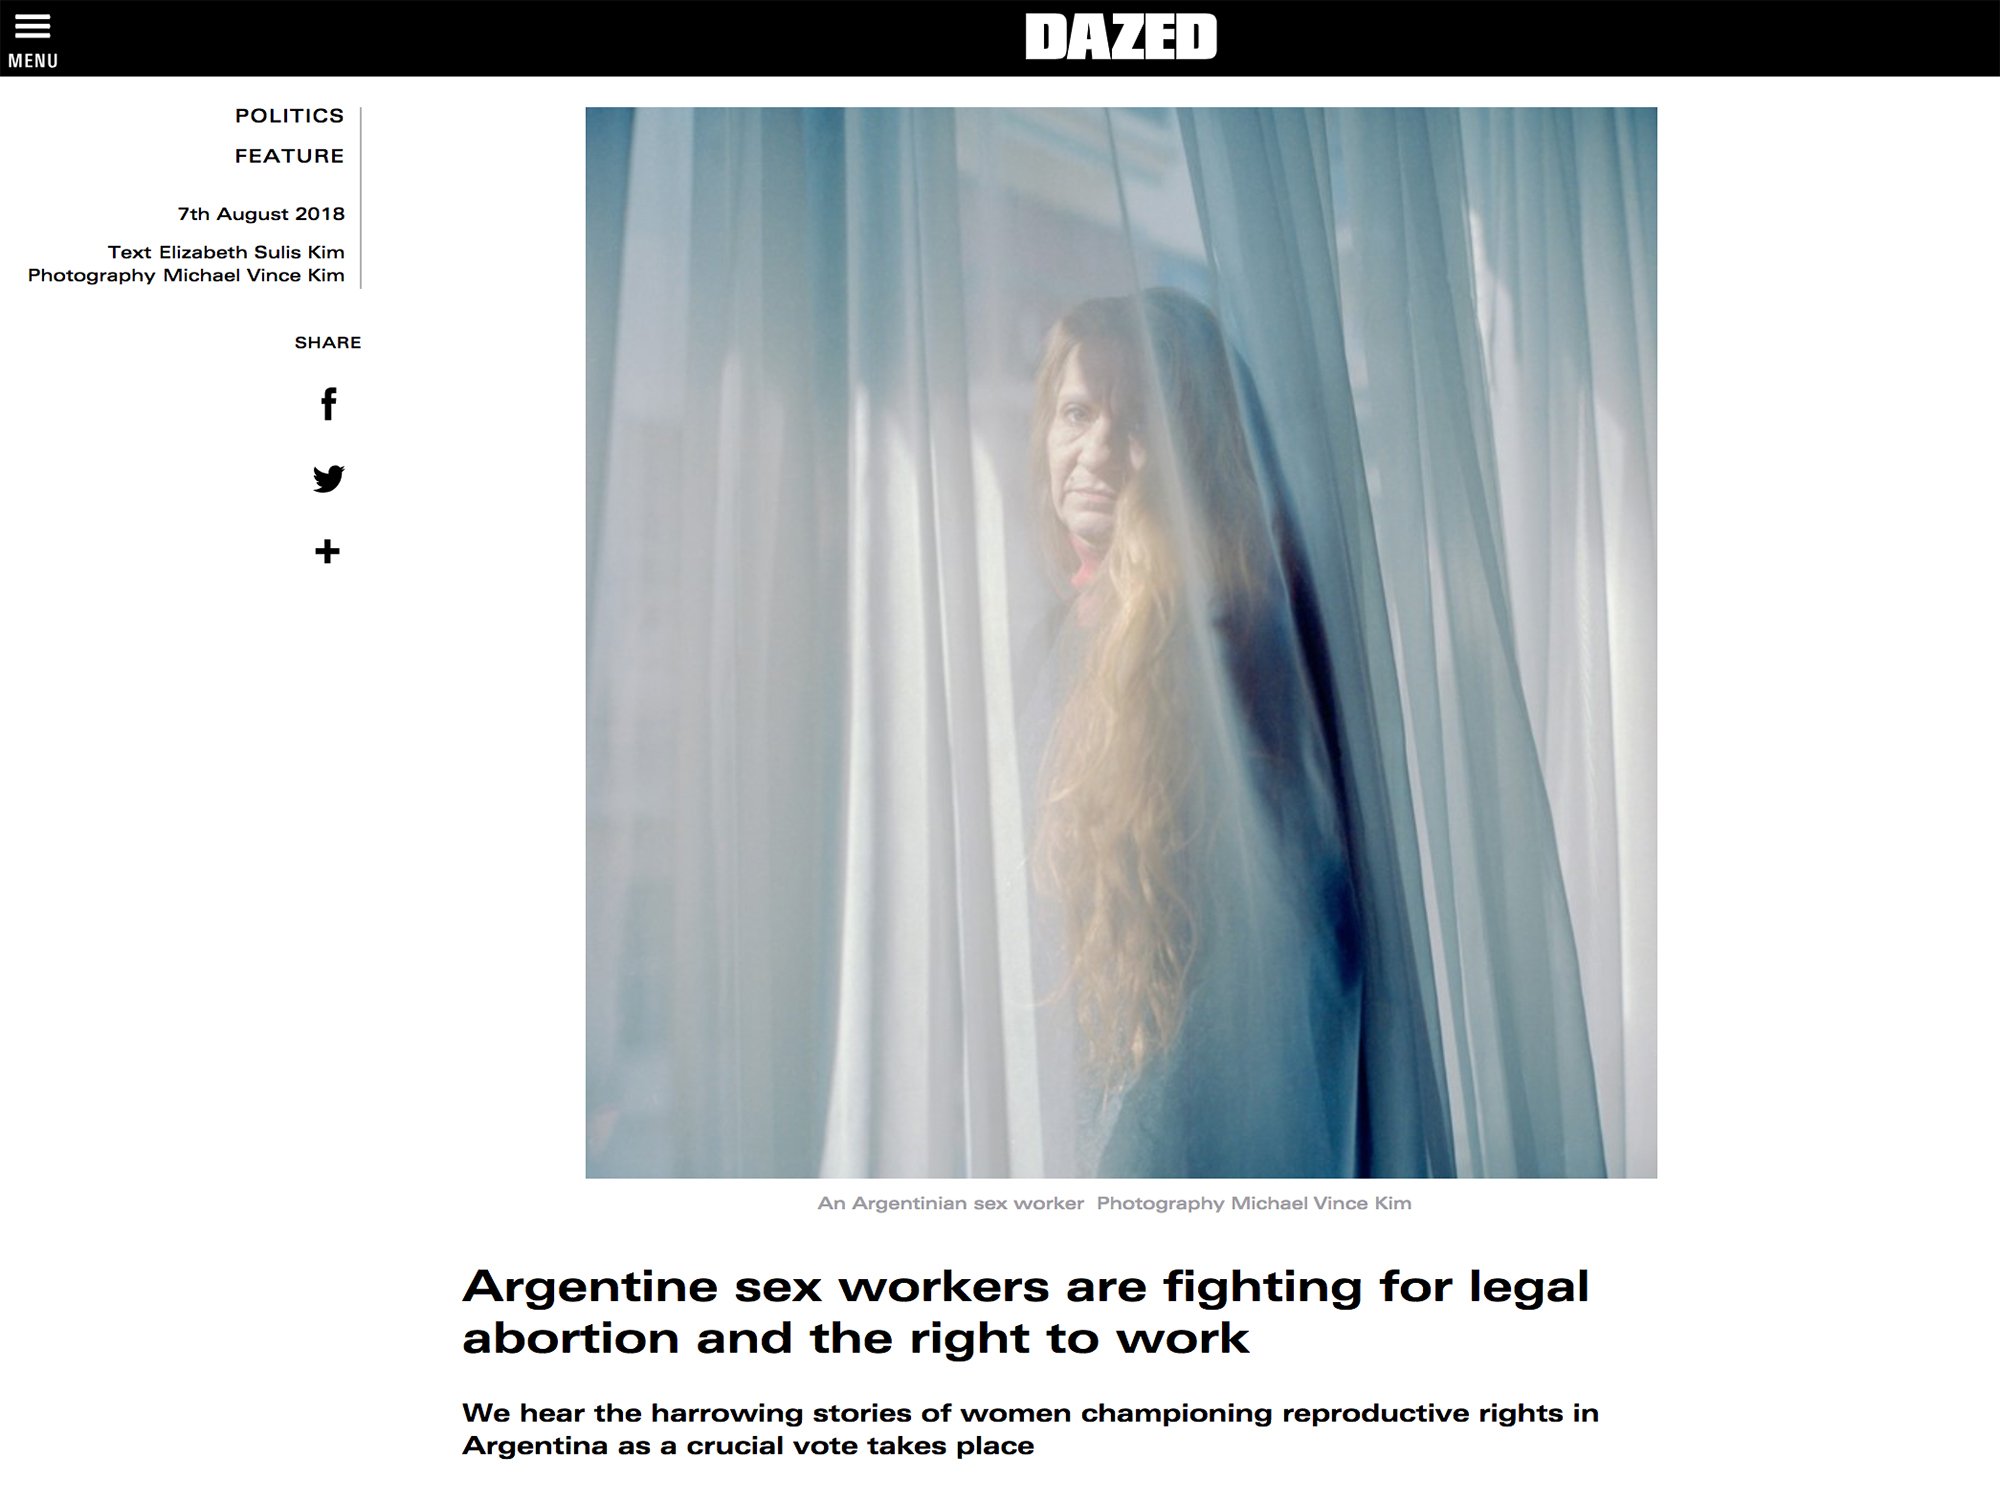 DAZED: Argentine sex workers are fighting for legal abortion and the right to work